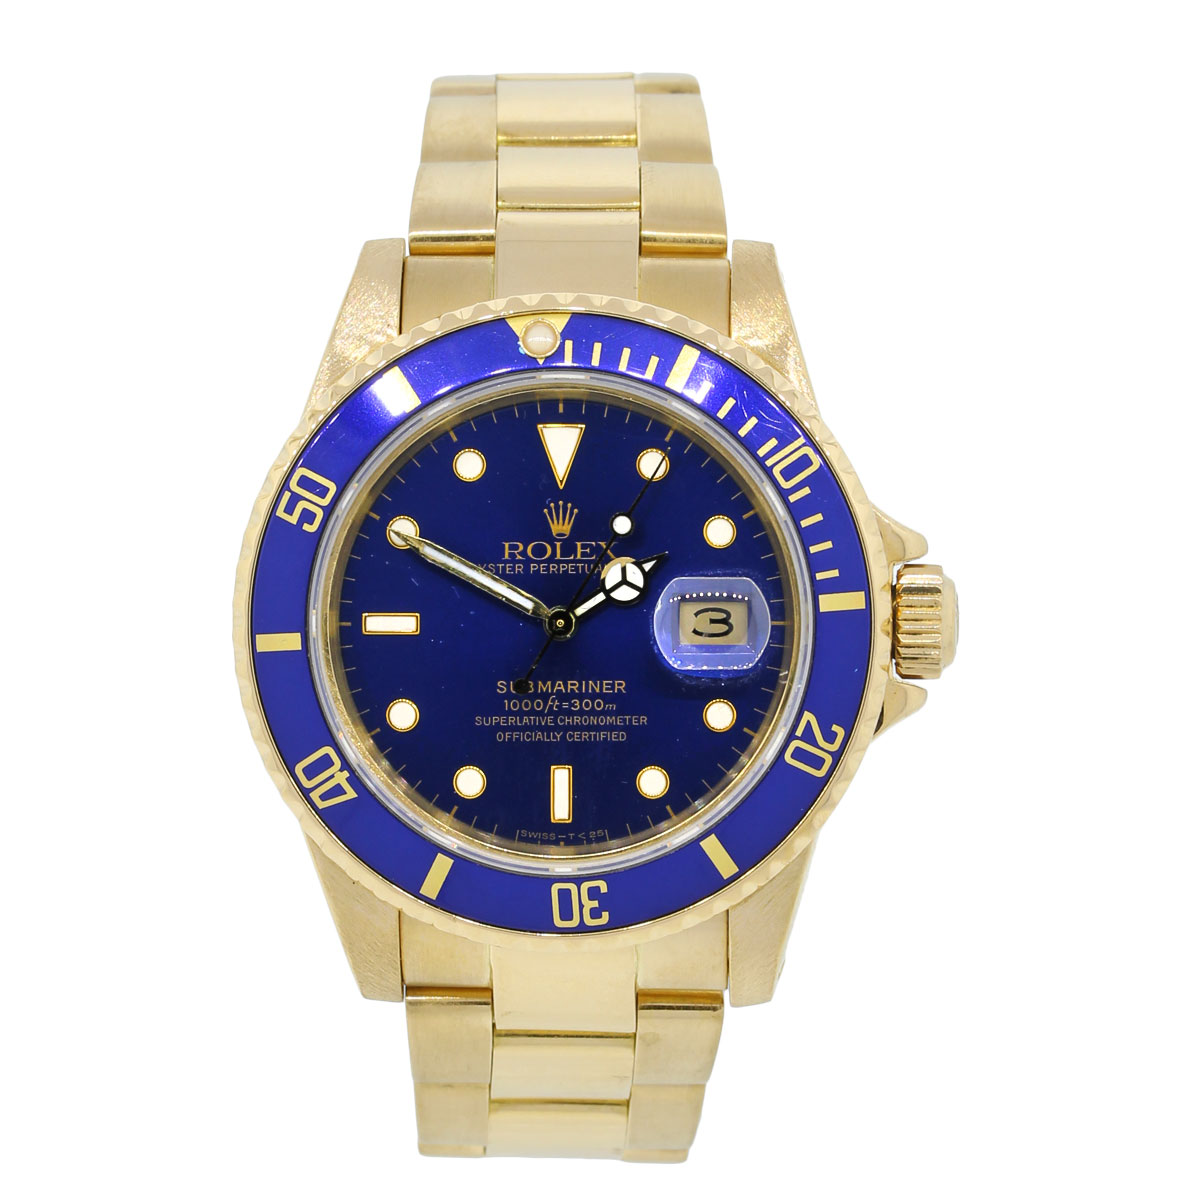 rolex 16808 submariner 18k yellow gold blue dial watch. Black Bedroom Furniture Sets. Home Design Ideas